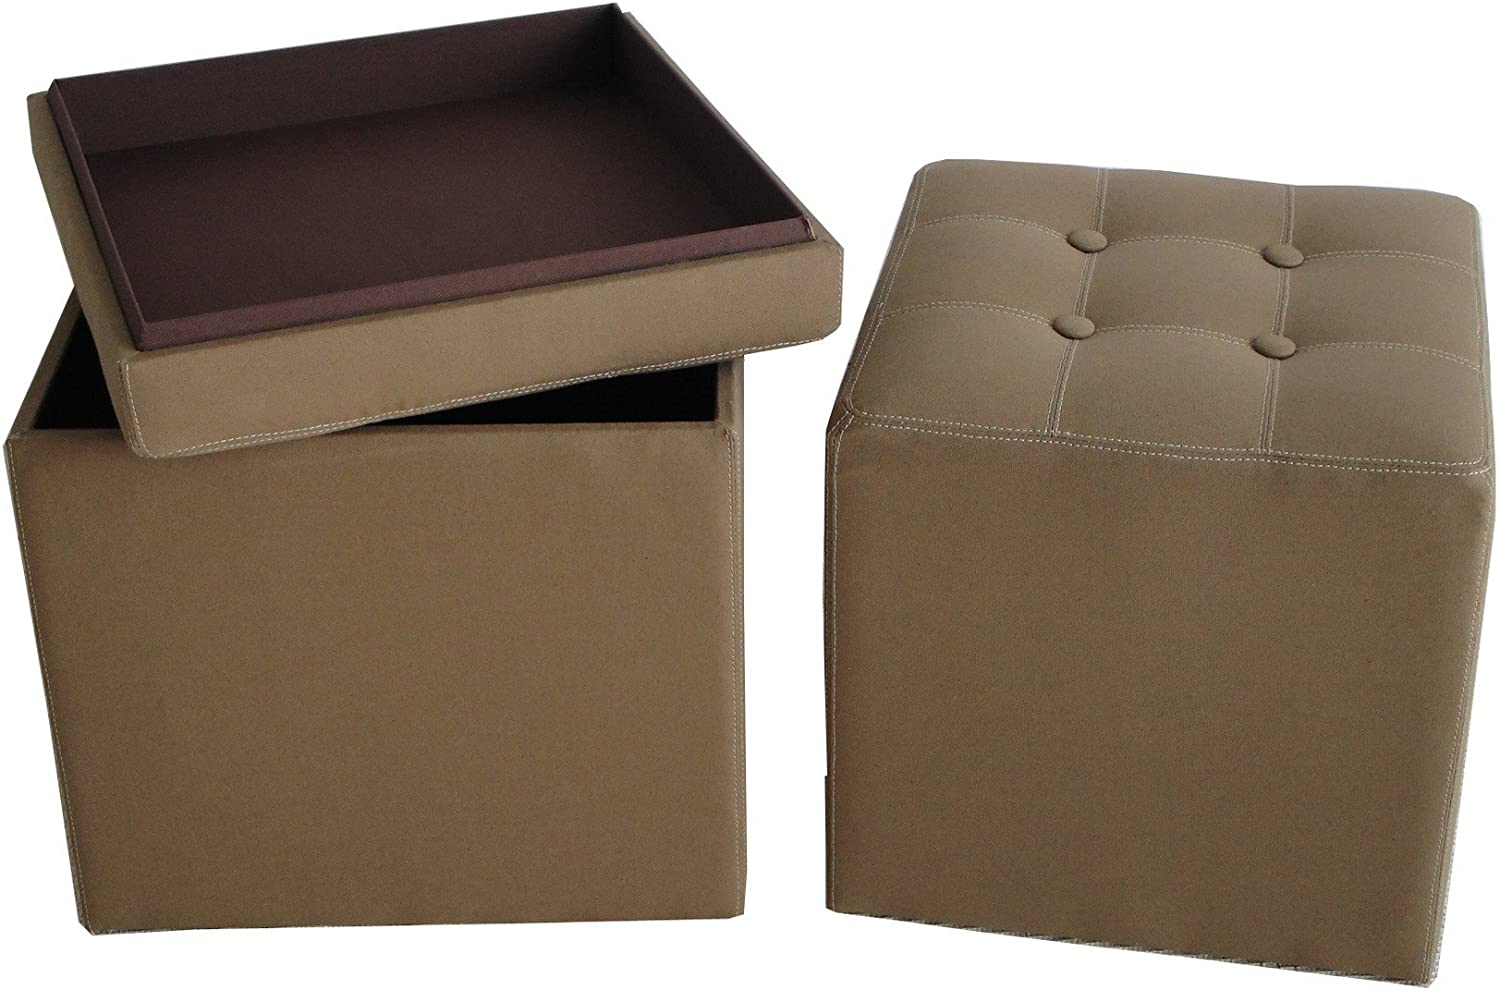 Screen All items in the store Gems Storage Large Box brown Safety and trust